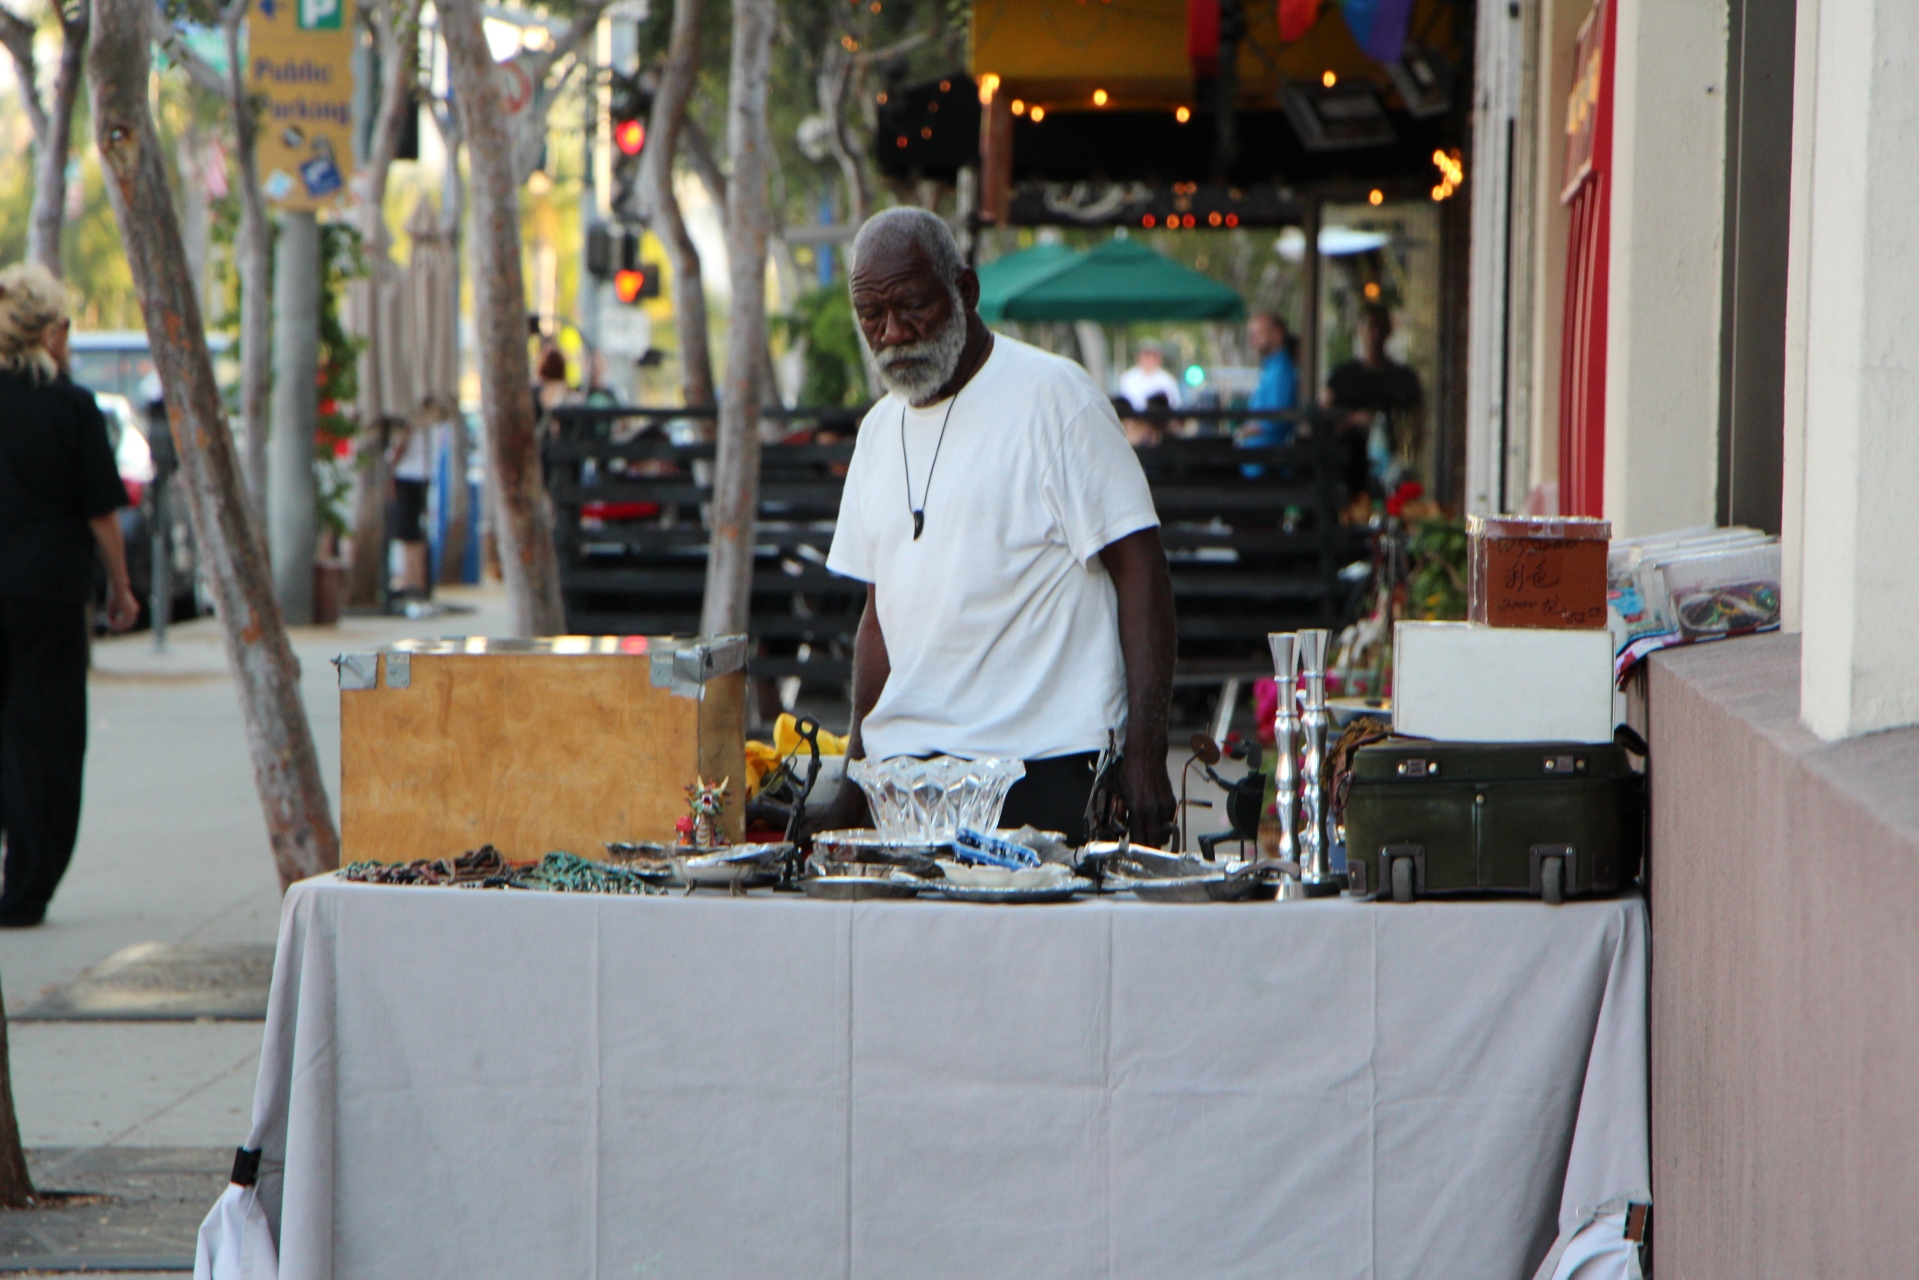 Street merchant on Santa Monica Boulevard, West Hollywood, California